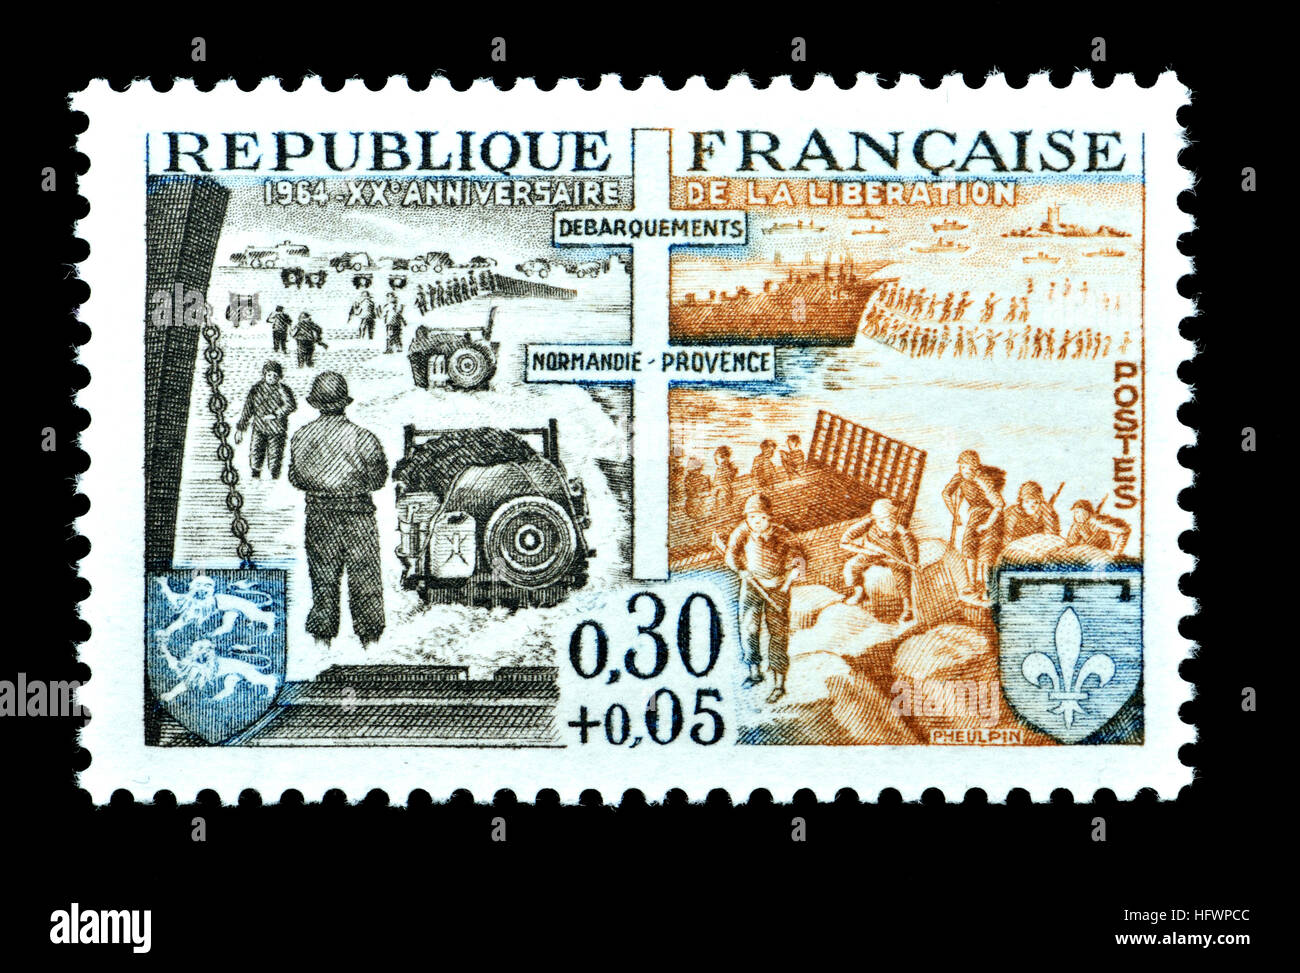 French postage stamp (1964) : 20th anniversary of the Liberation by allied troops in WW2. Normandy Landings 'Operation - Stock Image